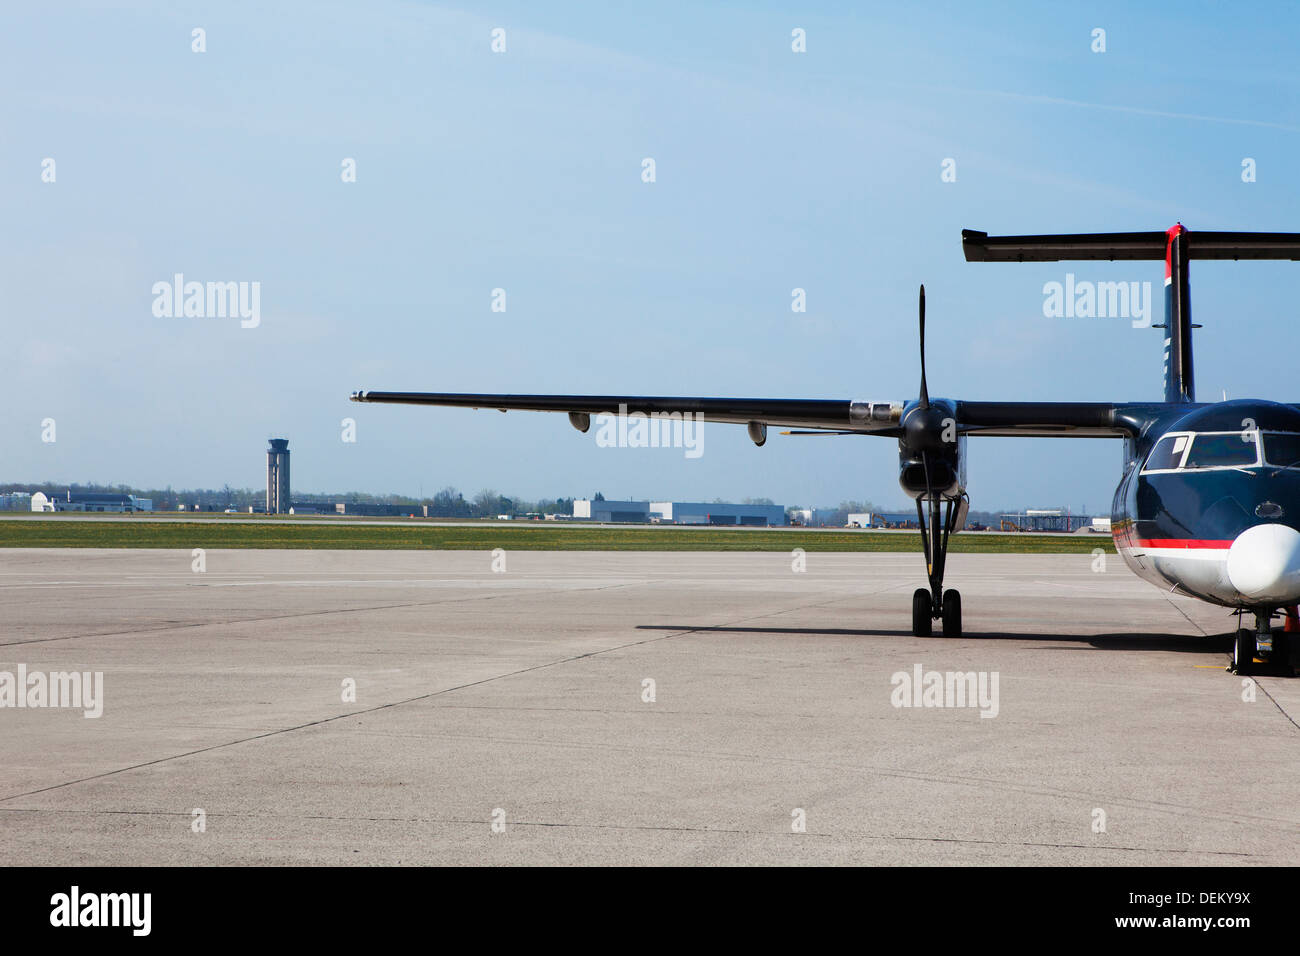 Airplane taxiing on runway - Stock Image